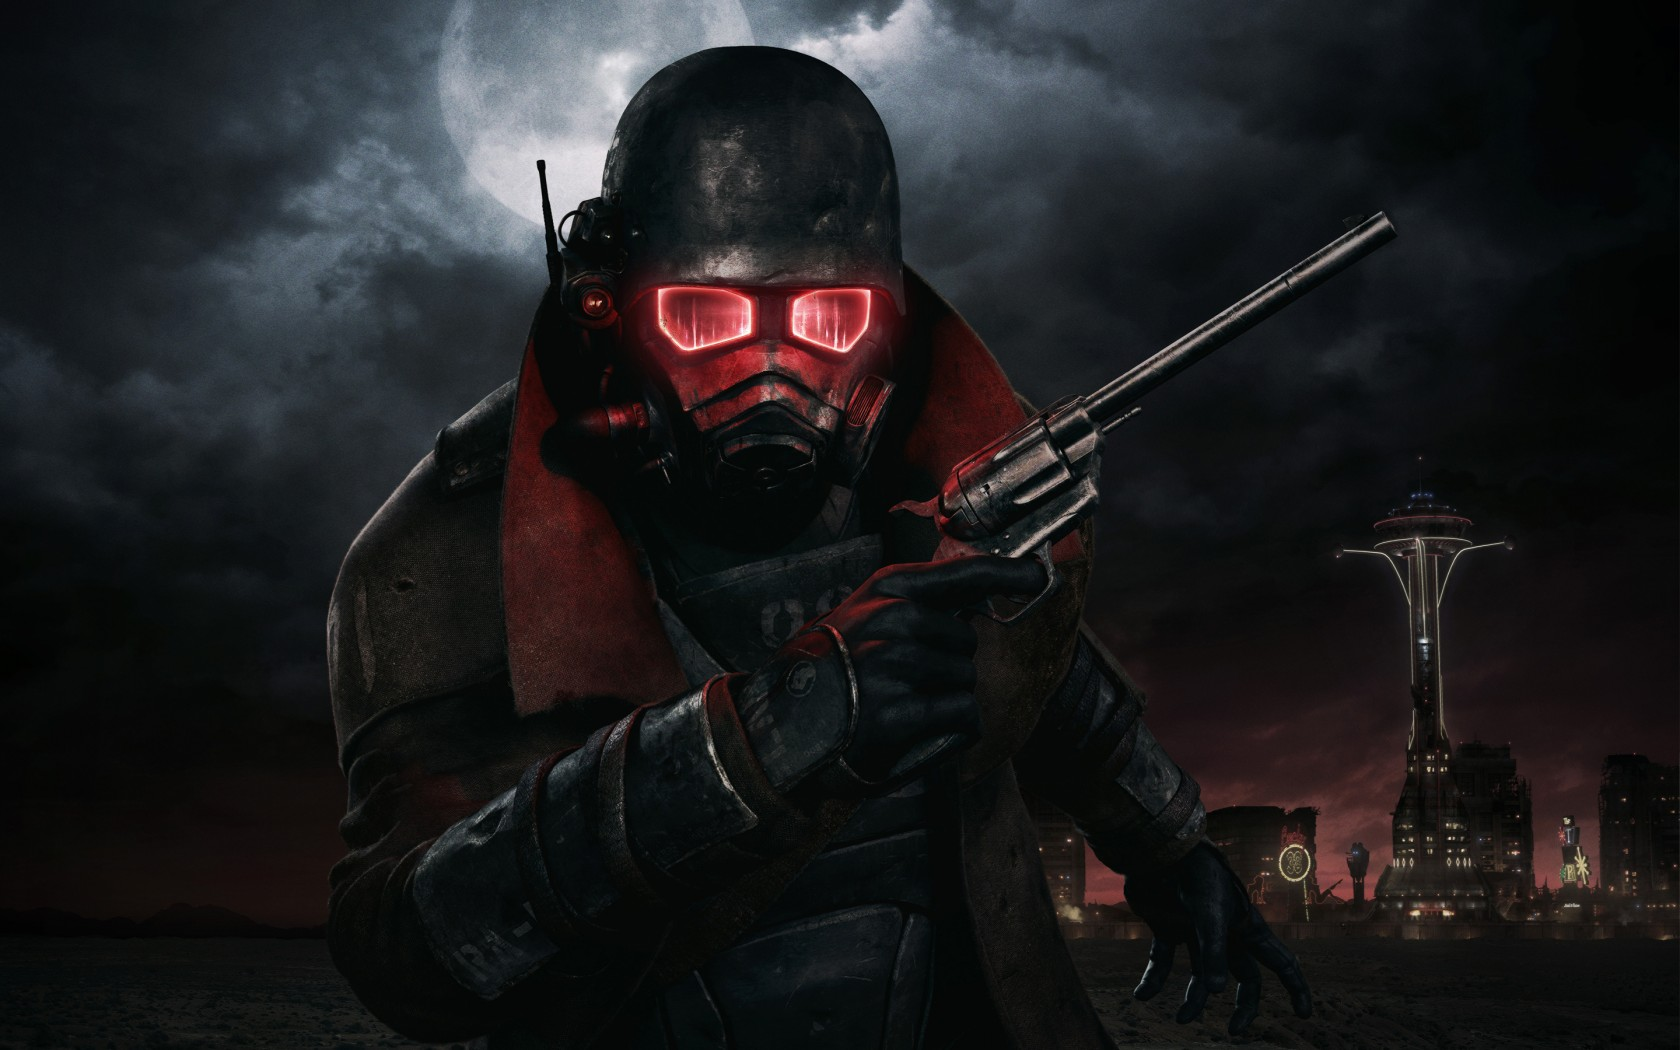 3d Patriots Wallpaper Fallout New Vegas Game Wallpapers Hd Wallpapers Id 8823